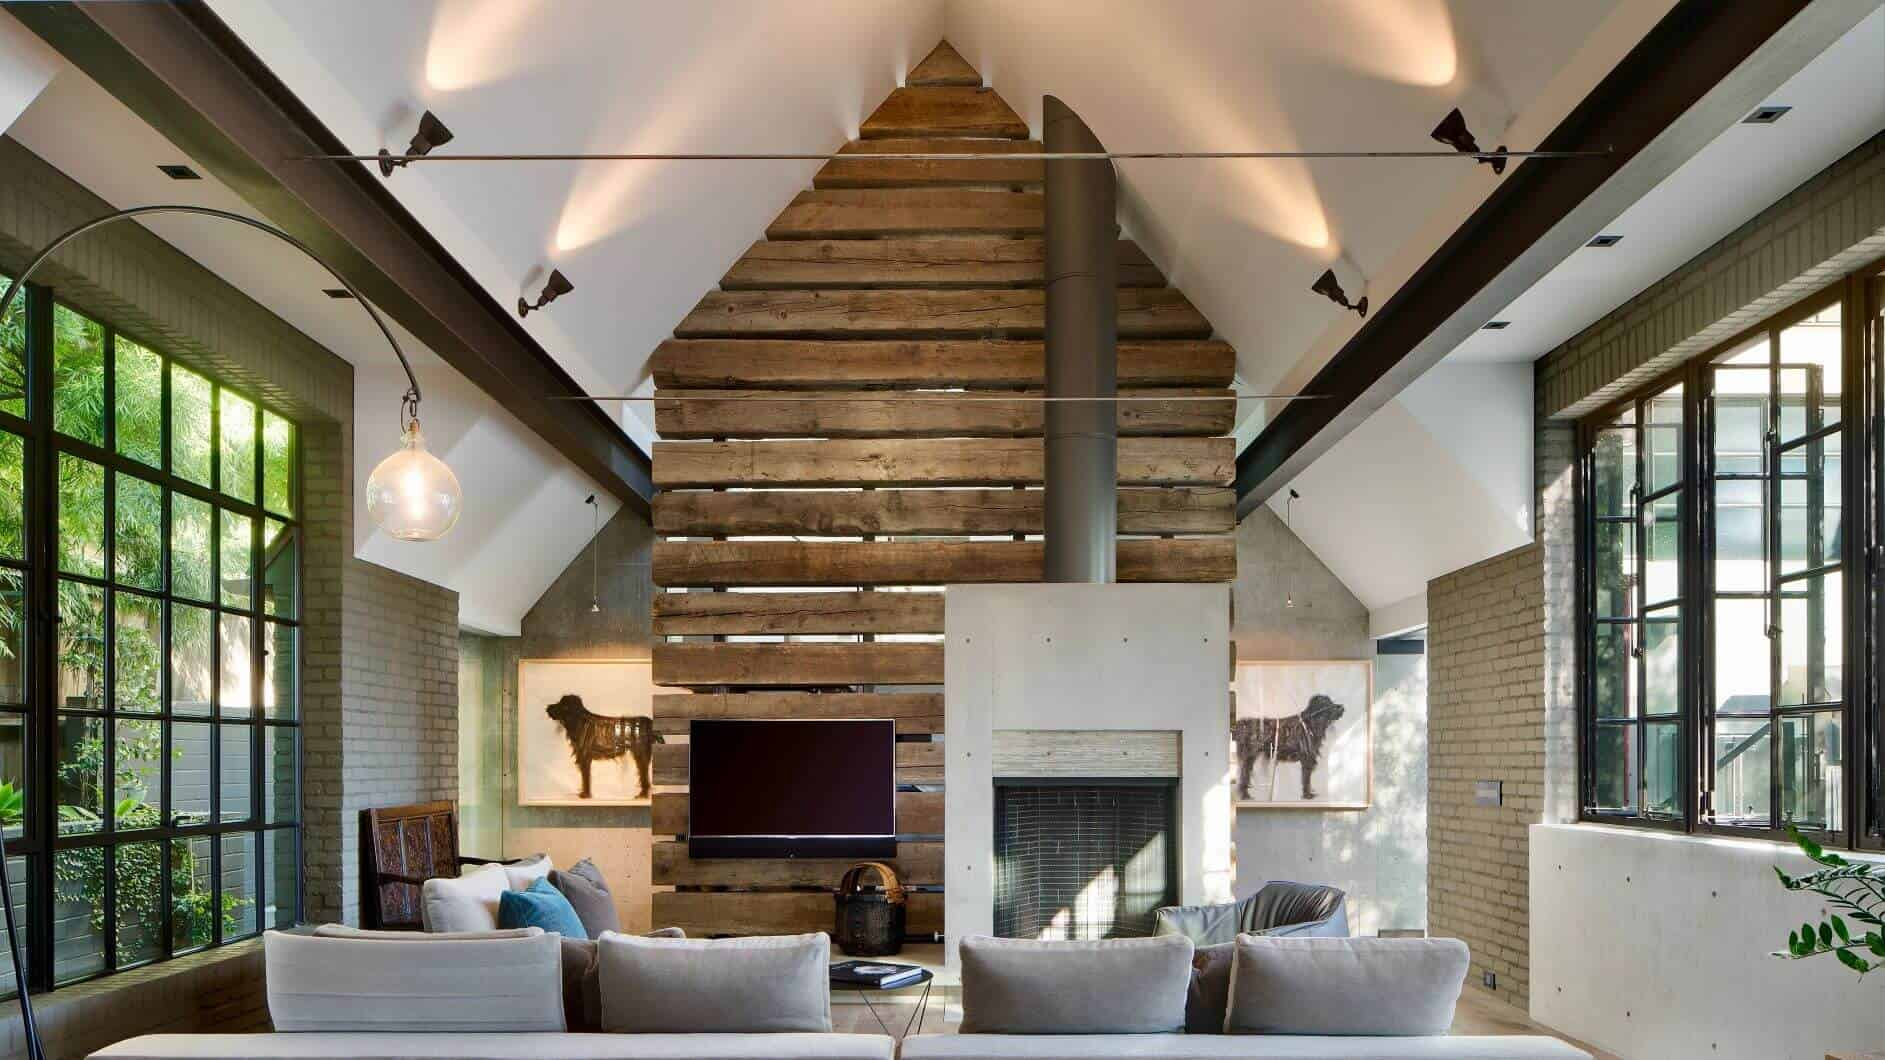 M5A9367 1 - Reclaimed Faux Beams vs. Solid Beams - Which ones are right for your job?